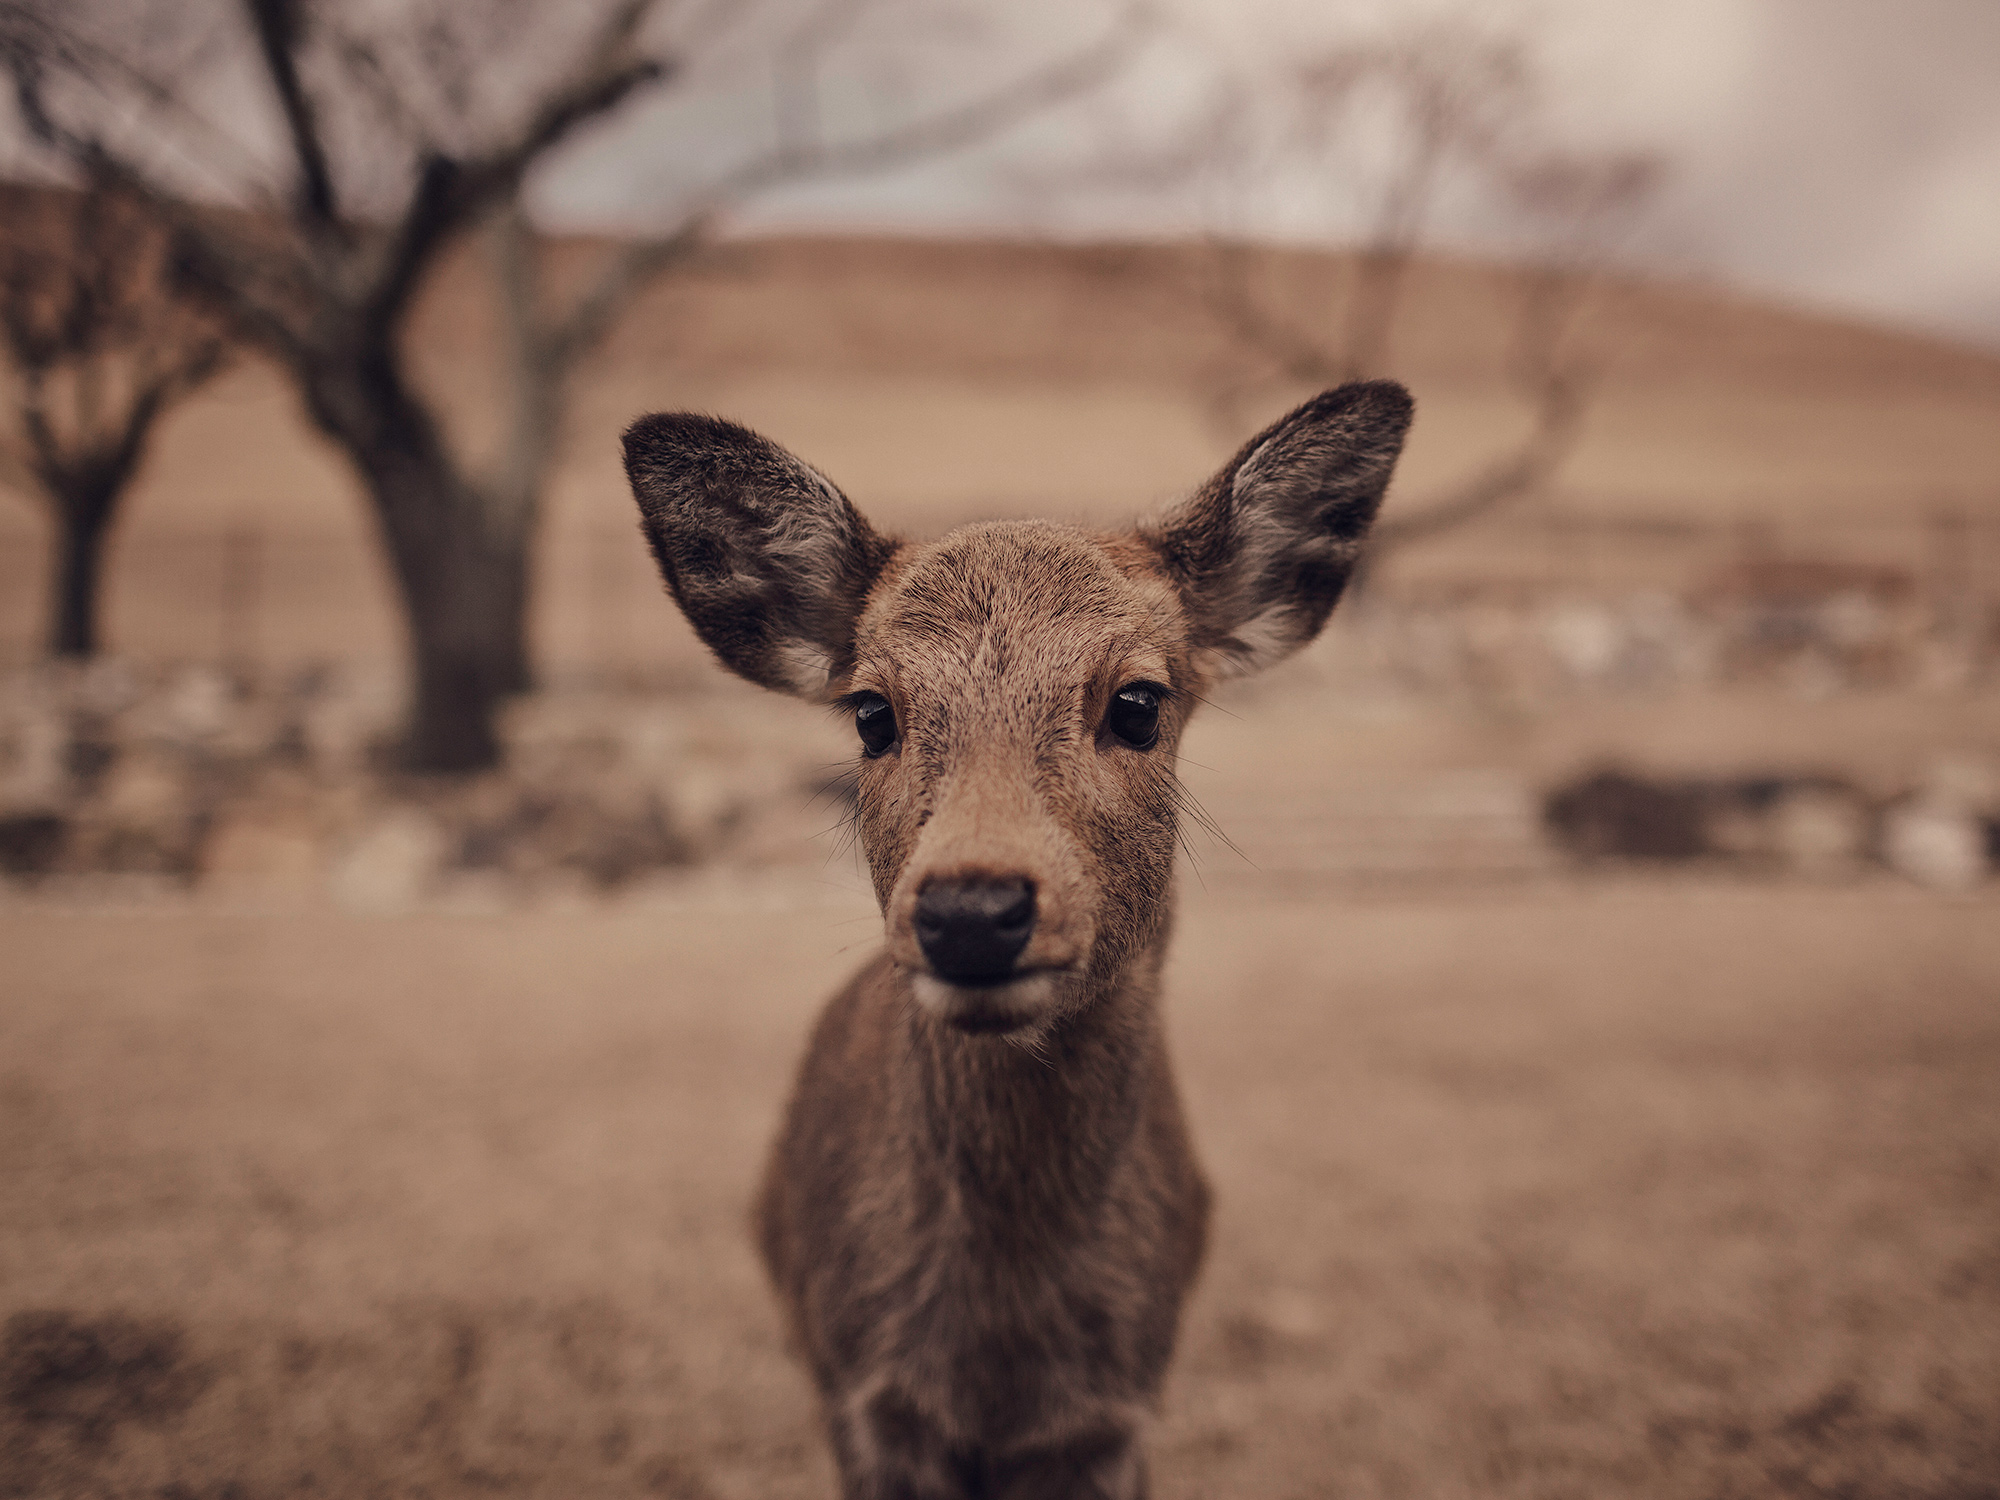 The sacred deer of Nara, Japan, photographed by Houston editorial and commercial photographer, Todd Spoth.